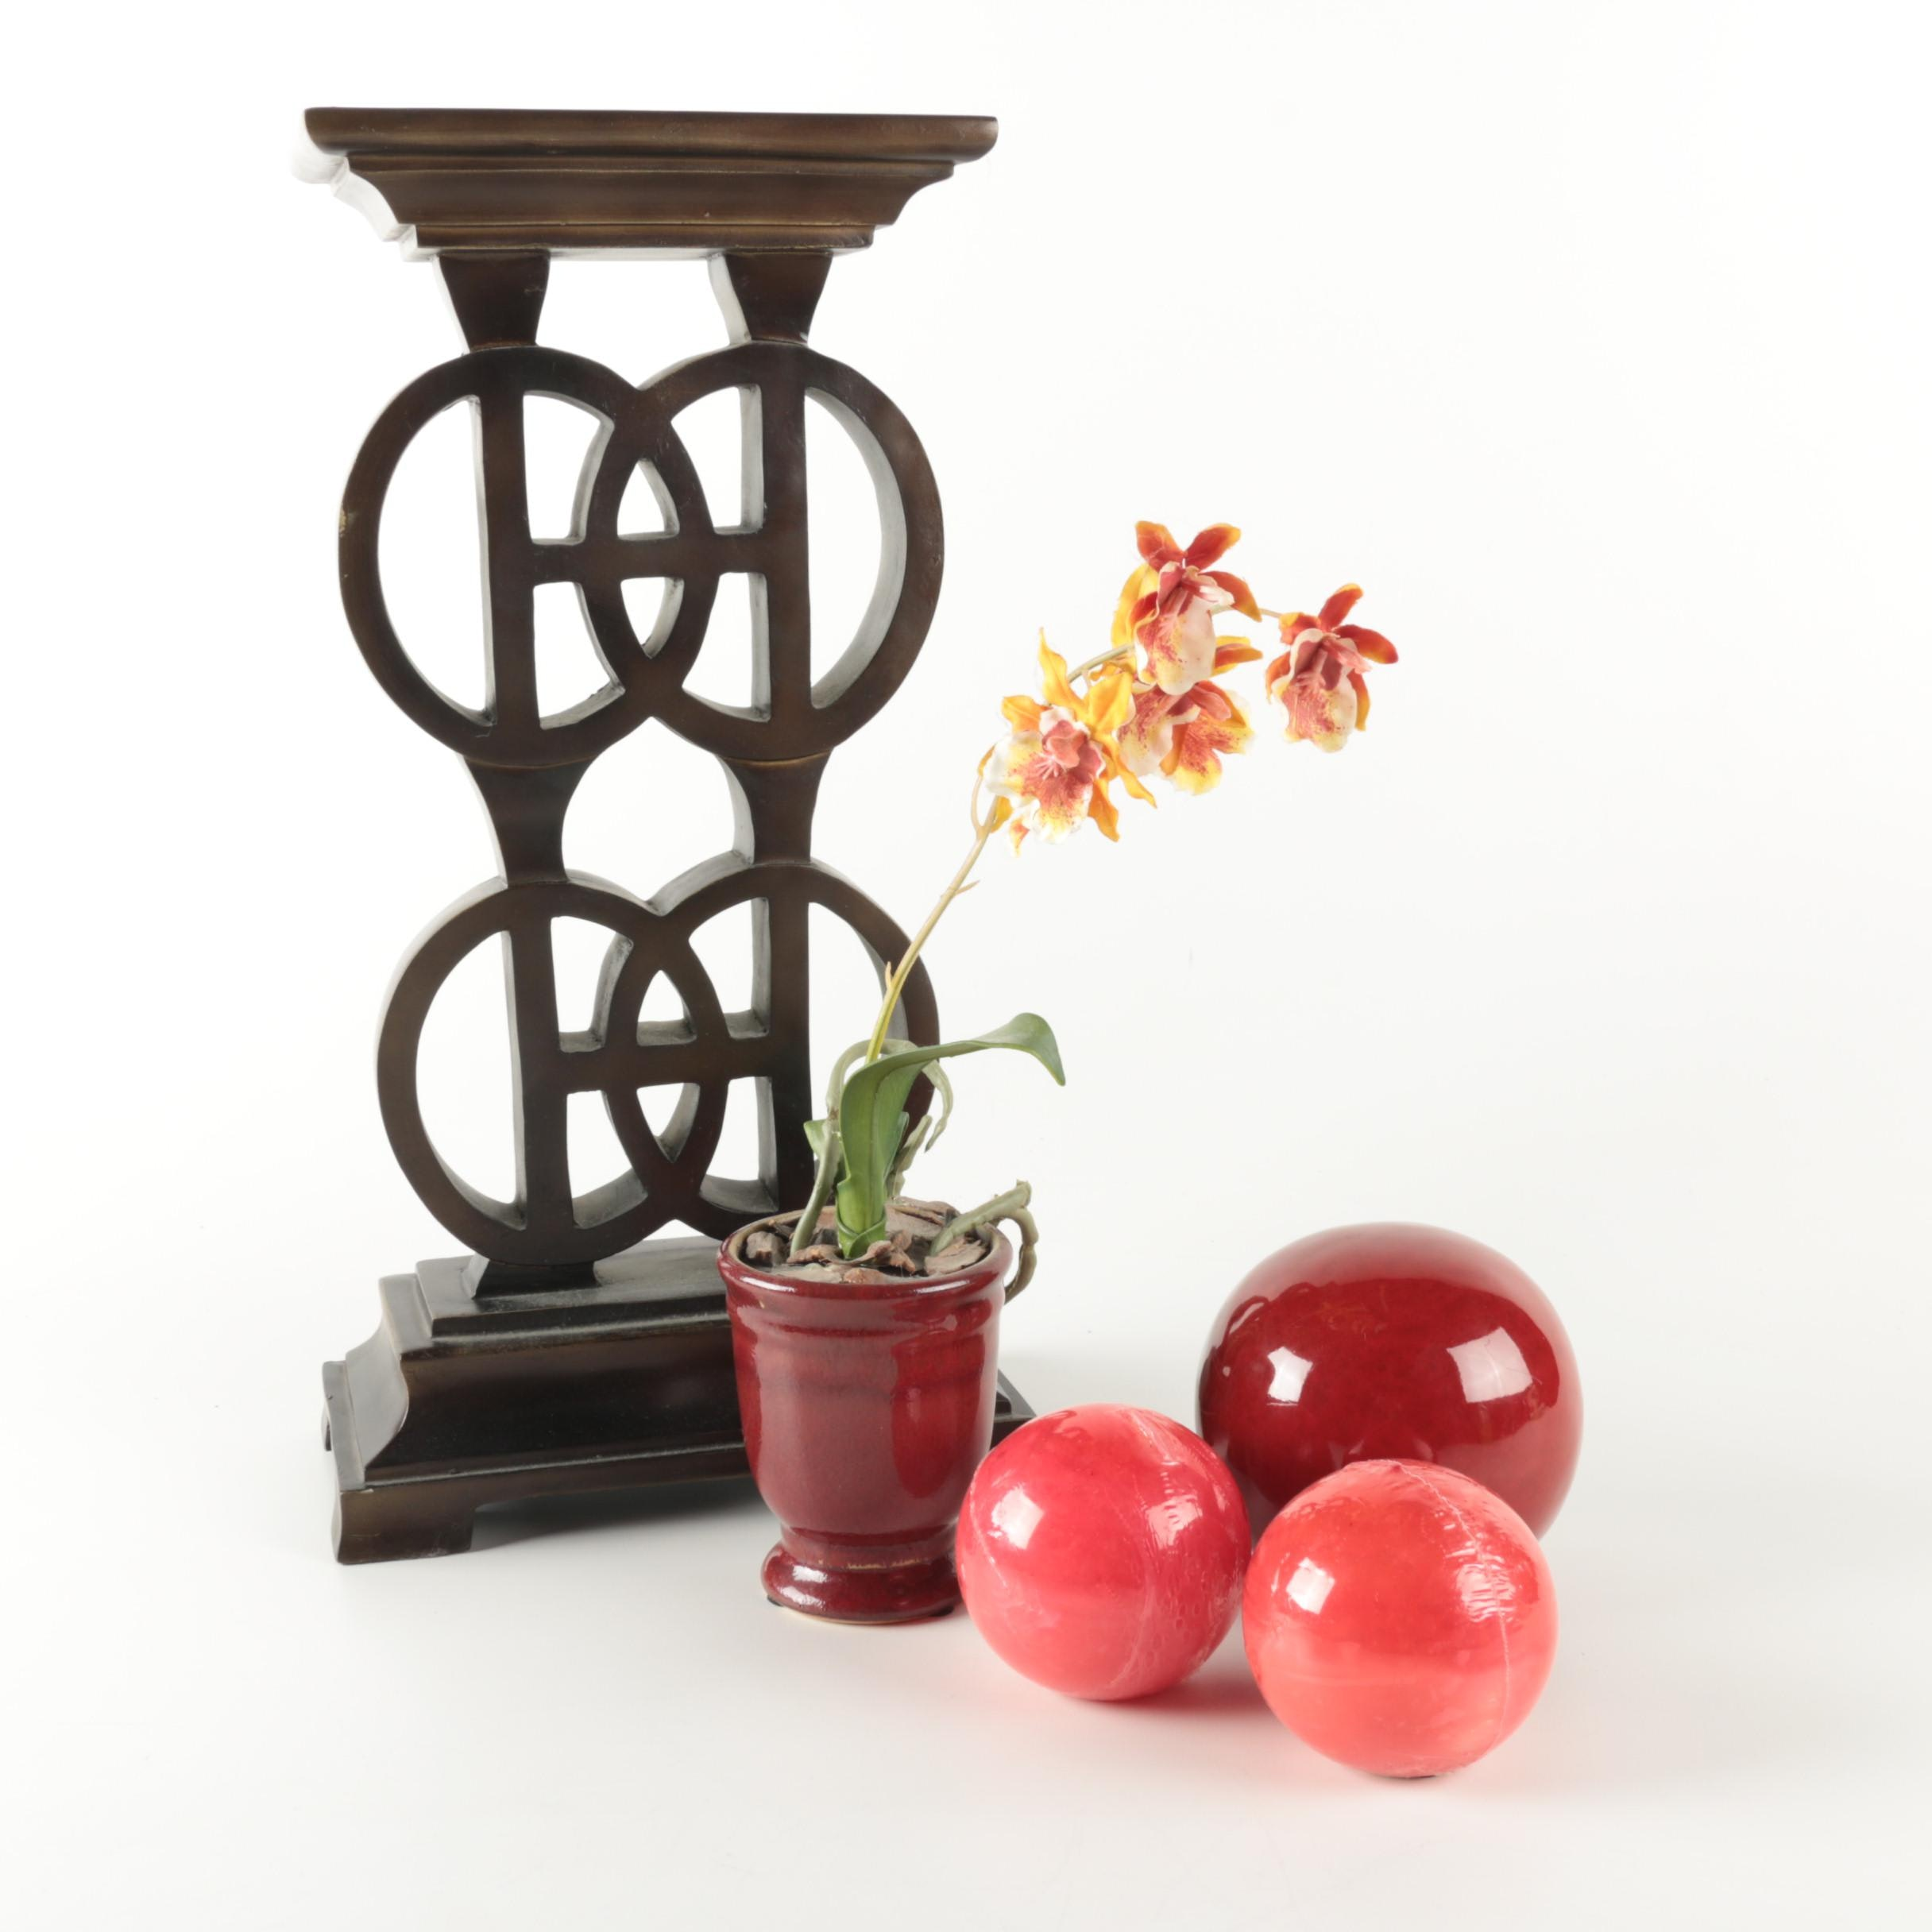 Metal Sculpture, Faux Potted Plant, and Assorted Home Decor